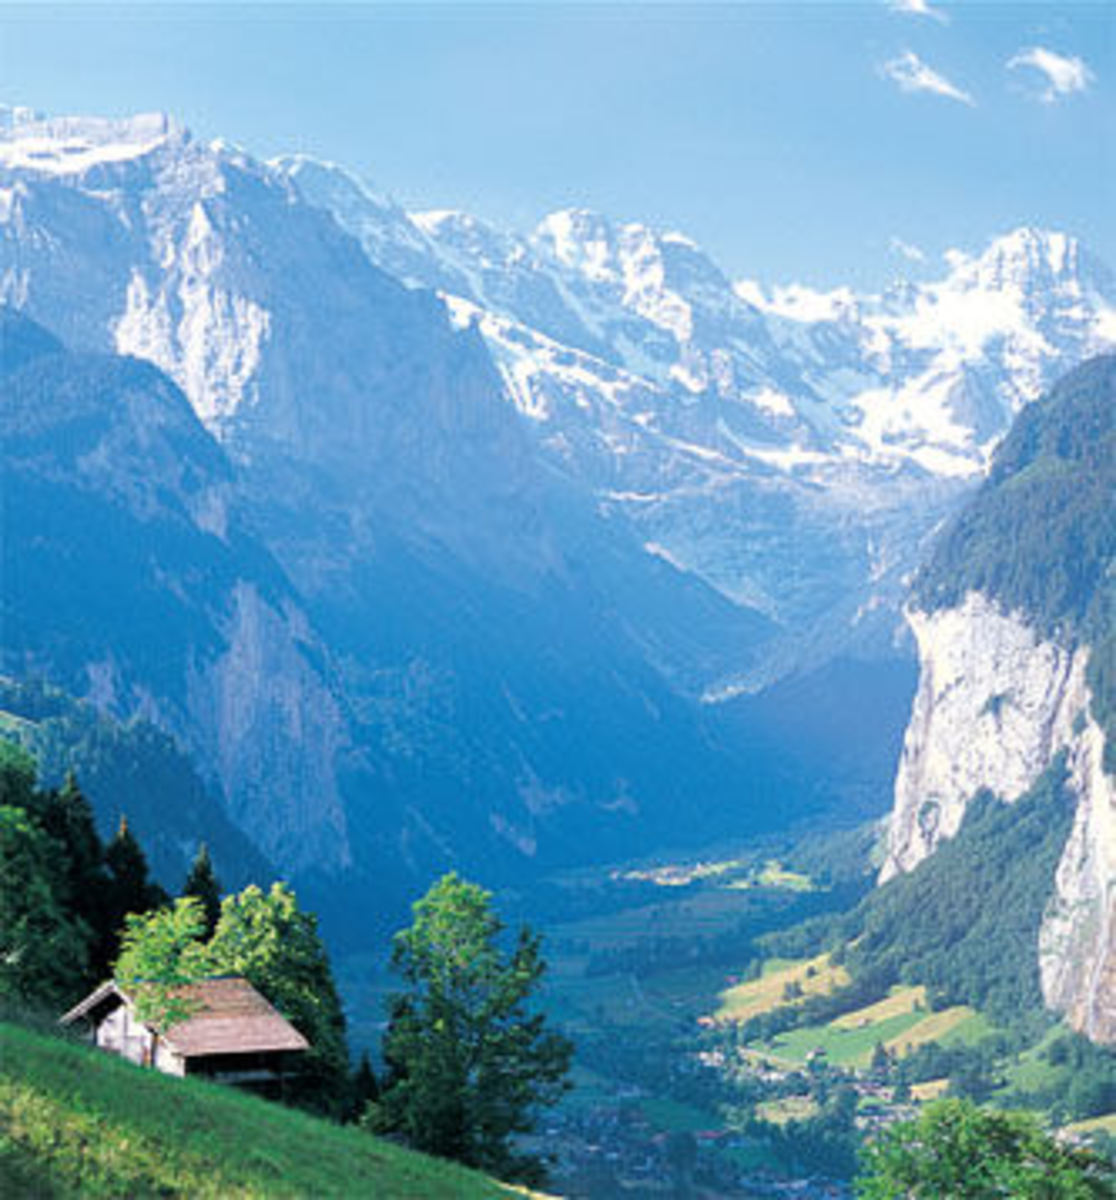 courtesy of http://www.switzerland-trips.com